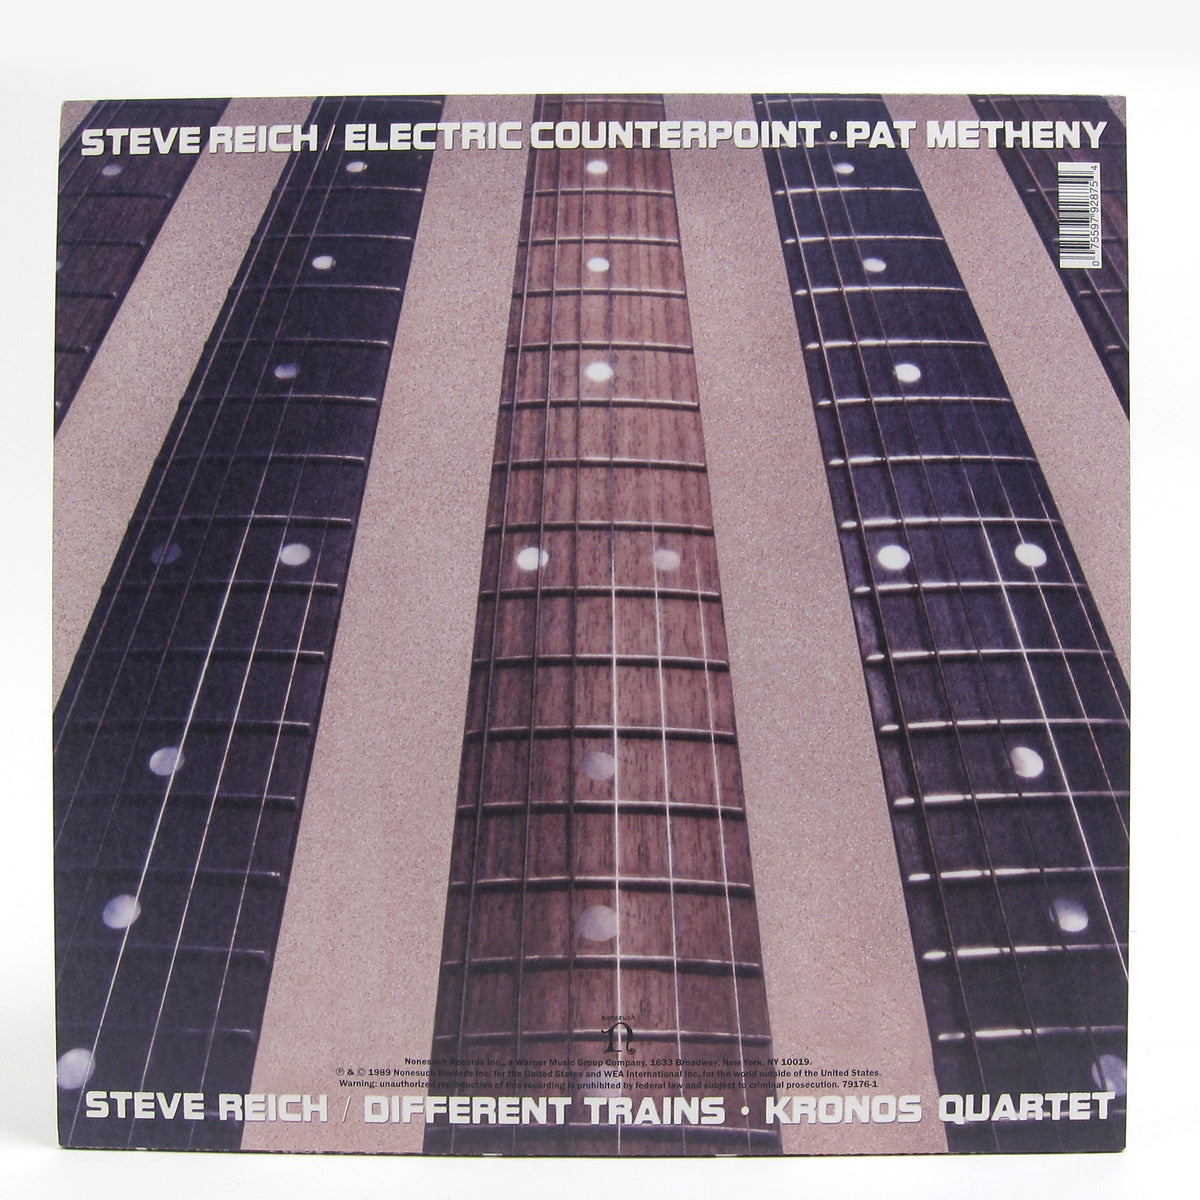 Steve Reich: Different Trains / Electric Counterpoint (Kronos Quartet, Pat Metheny) Vinyl LP